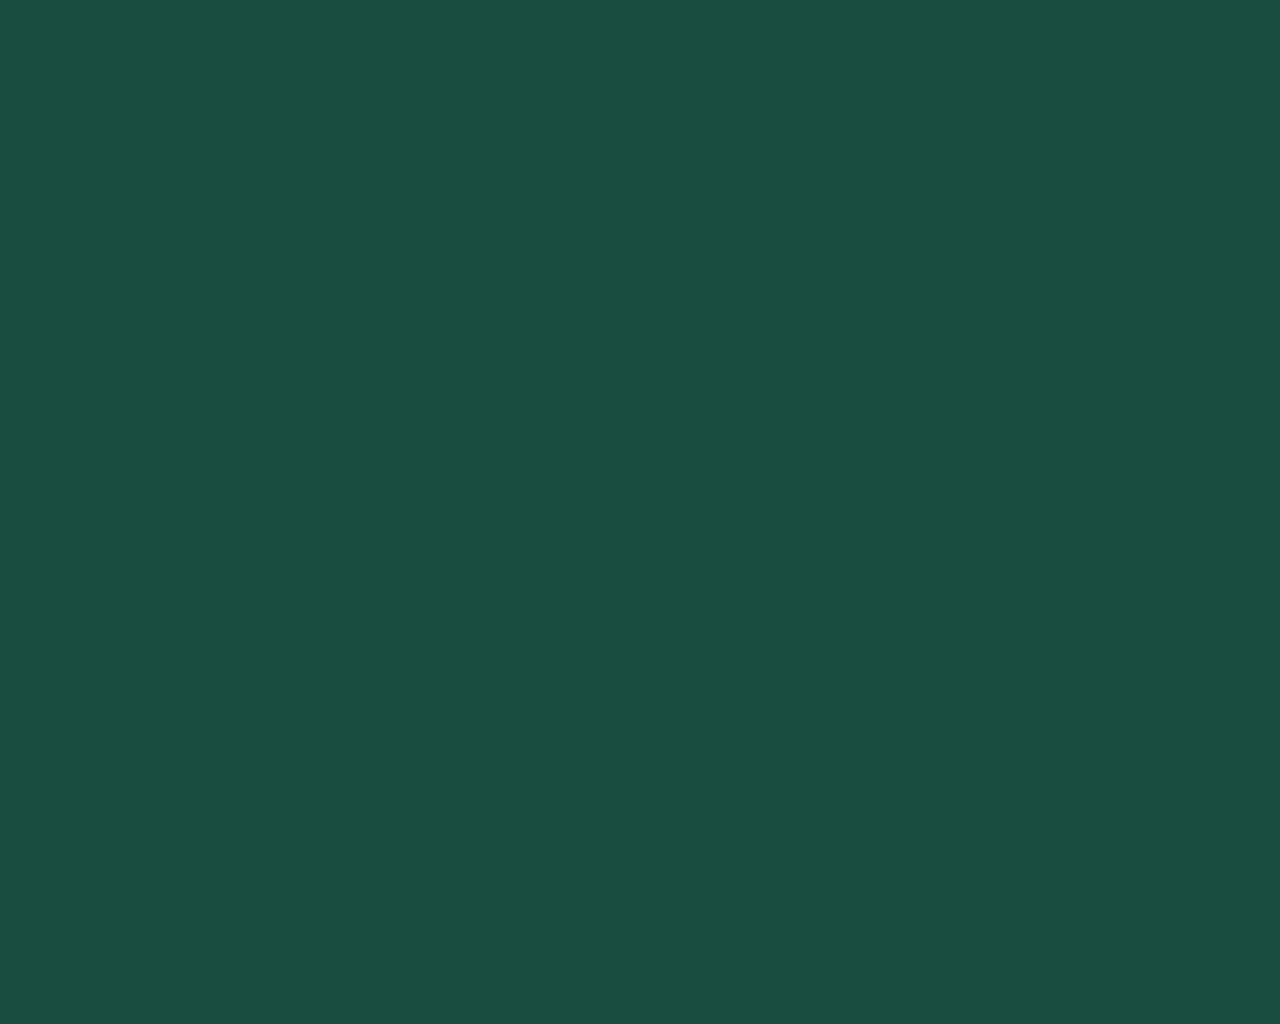 1280x1024 English Green Solid Color Background